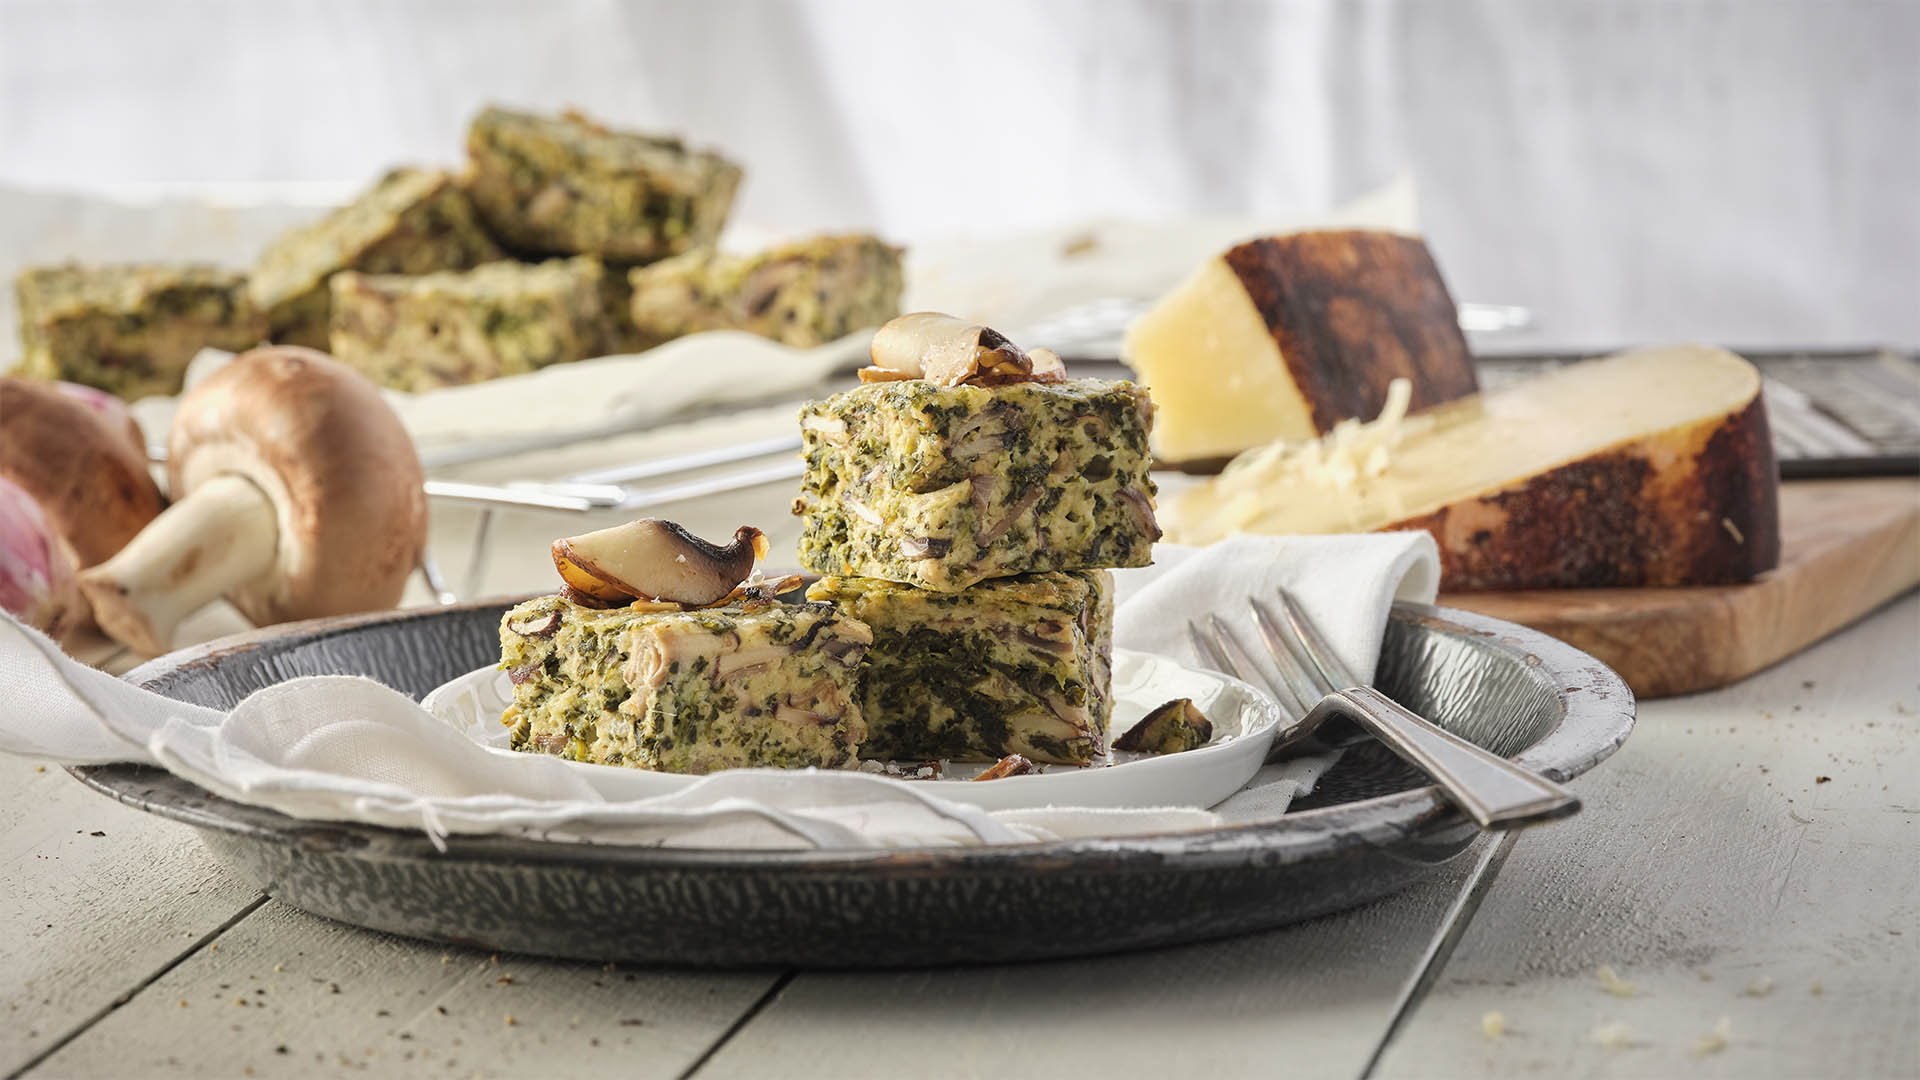 Spinach and Mushroom squares cut and placed onto a white serving plate, surrounded by cheese, mushrooms, and white linens on a grey rustic table. More squares in the background.